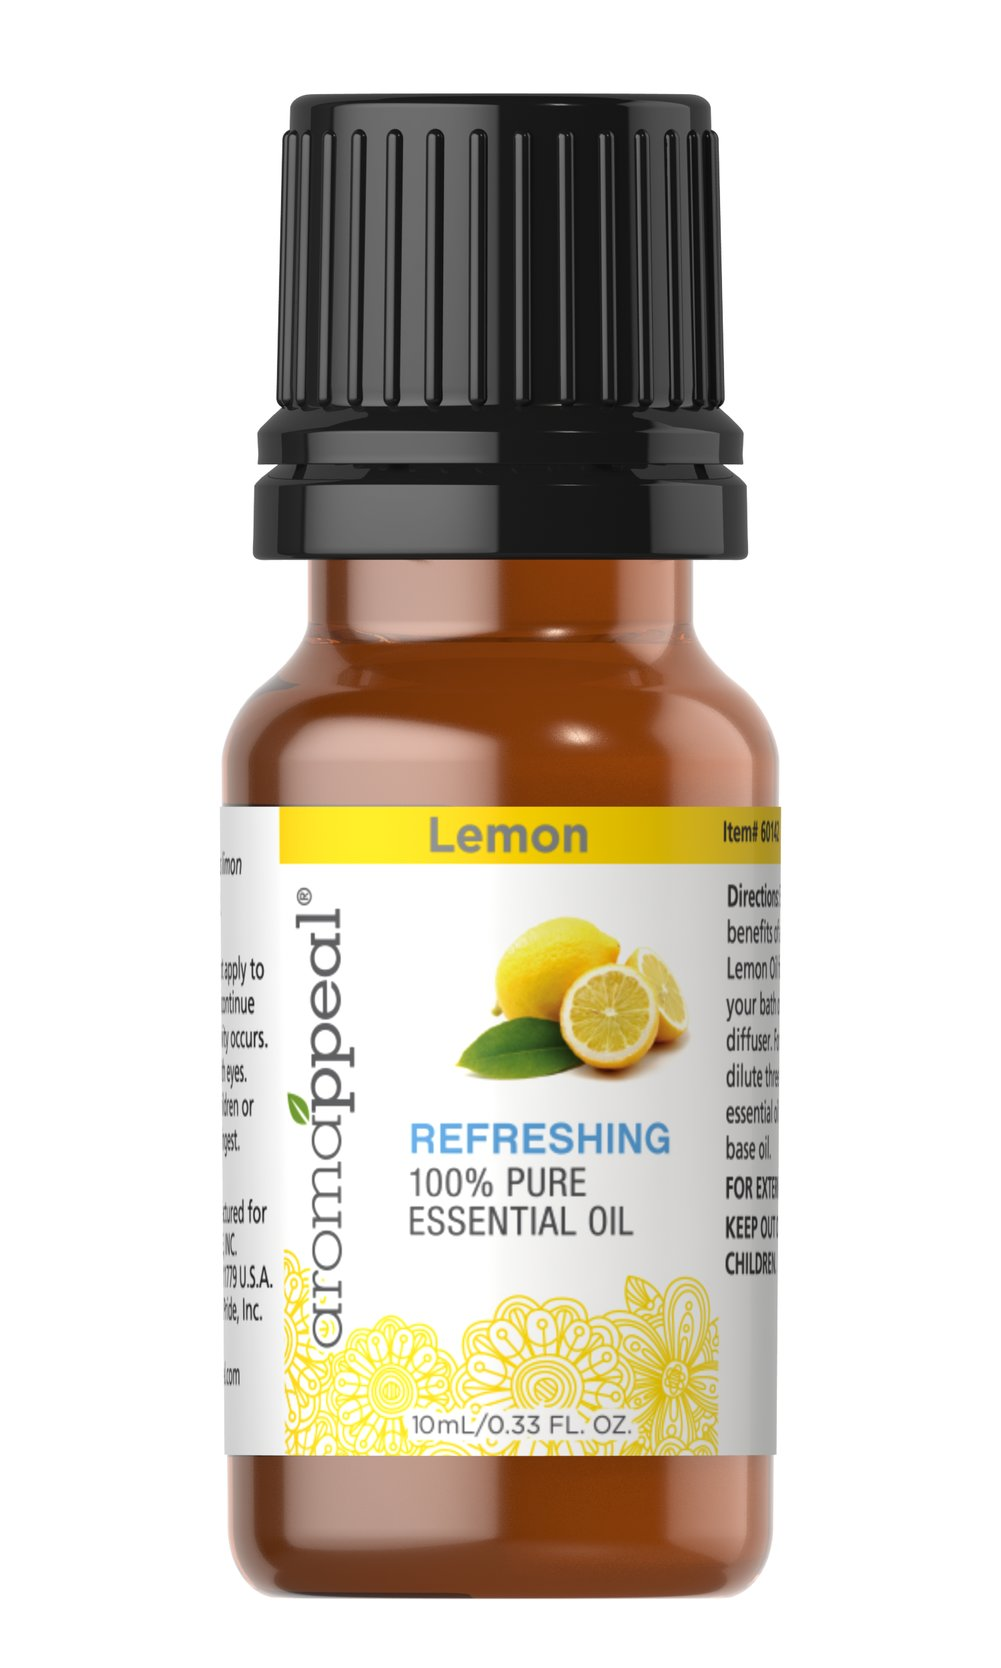 "Lemon 100% Pure Essential Oil <p>Arouse your senses with the cleansing, purifying freshness of Lemon Oil. Treasured for its sweetly mild, citrusy fragrance.<br /></p><ul><li><span class=""bold-pink"">Traditional Uses:</span> Cleansing and purifying.</li><li><span class=""bold-pink"">History:</span>  Arouse your senses with the cleansing, purifying freshness of Lemon Oil.  Treasured for its sweetly mild, citrusy fra"